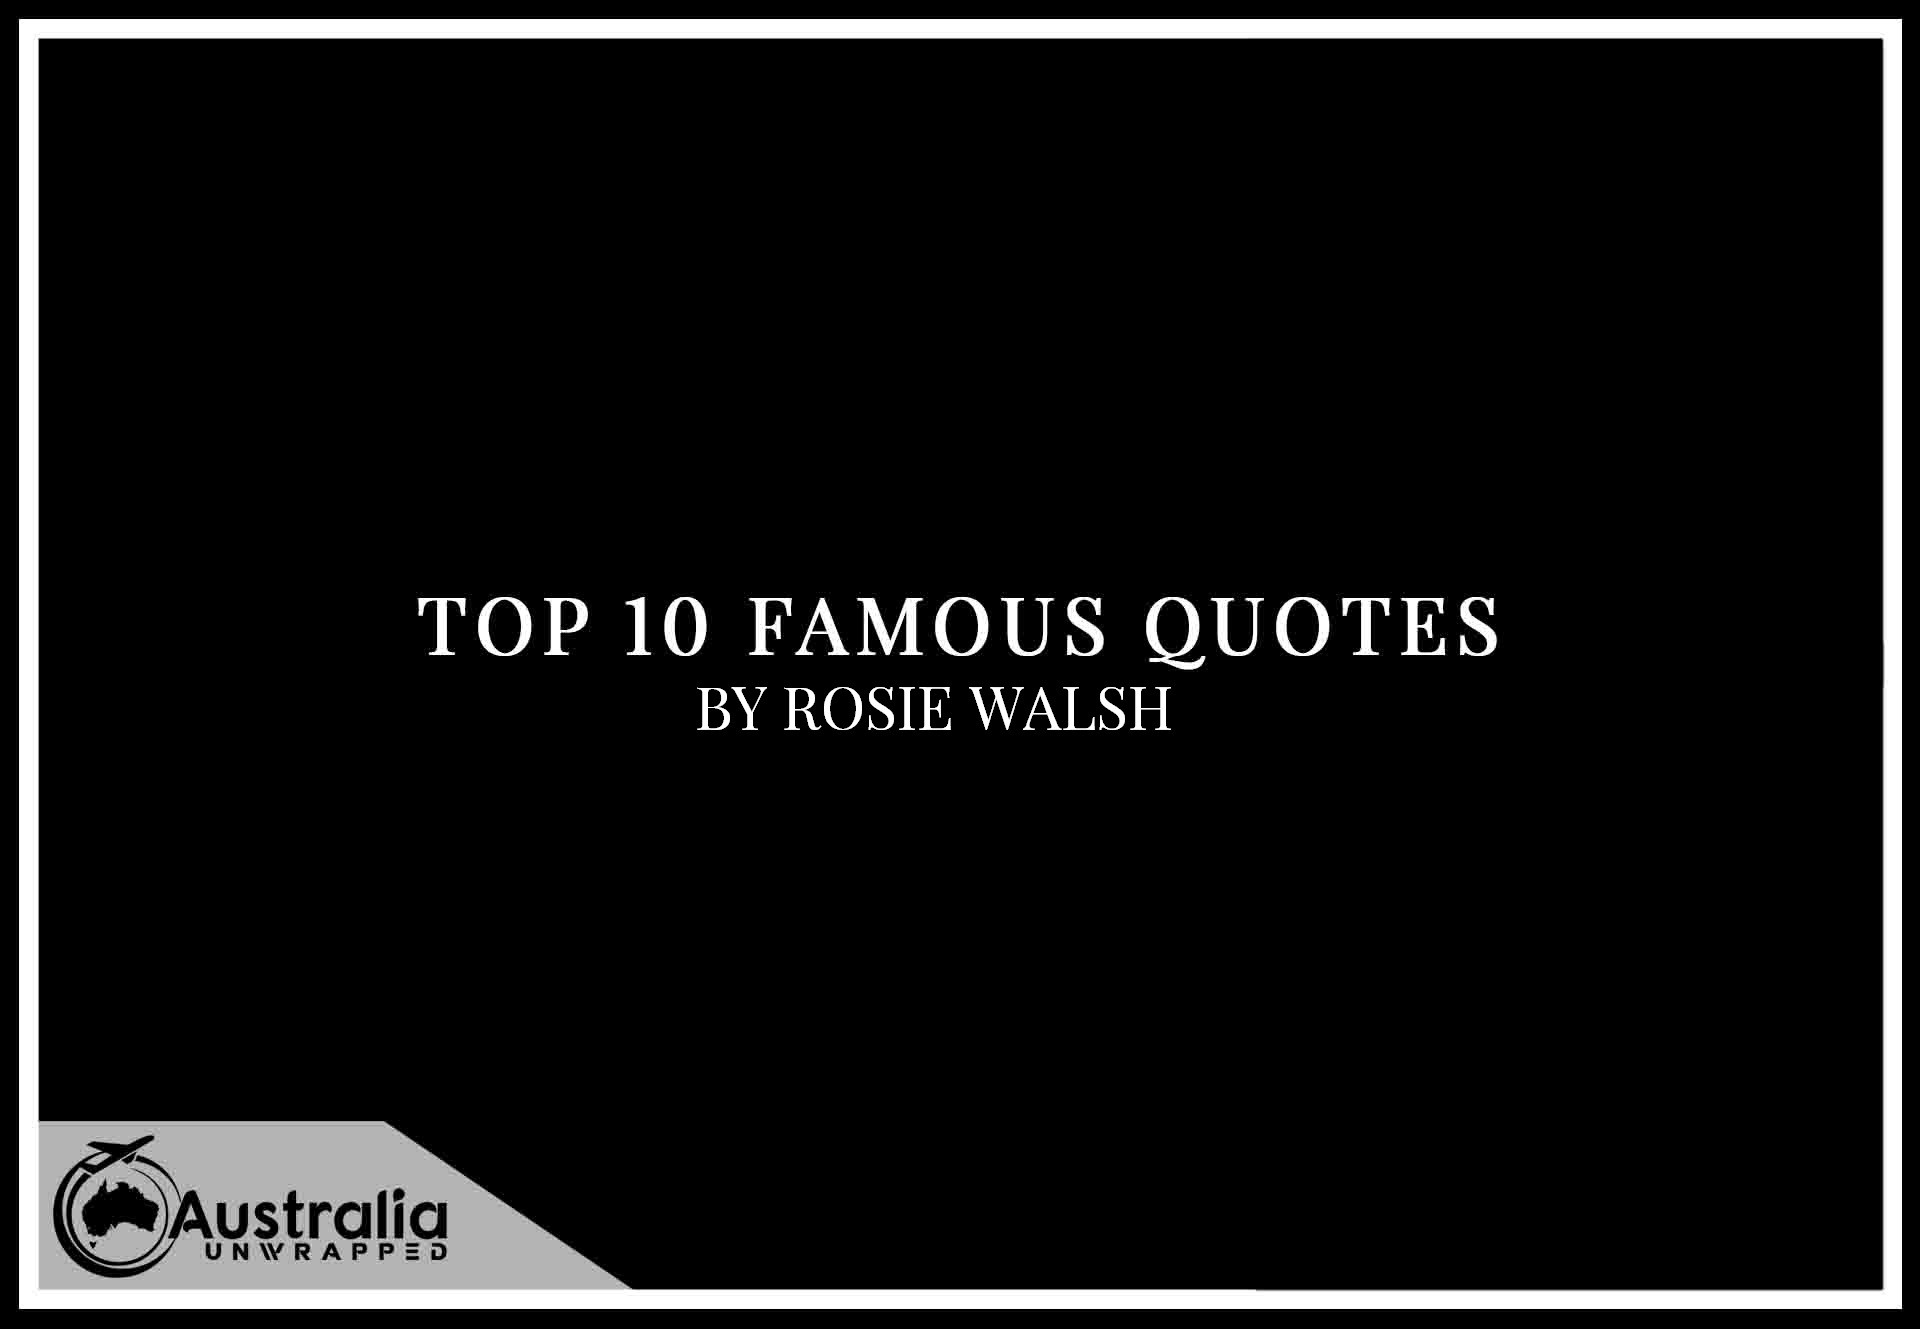 Top 10 Famous Quotes by Author Rosie Walsh